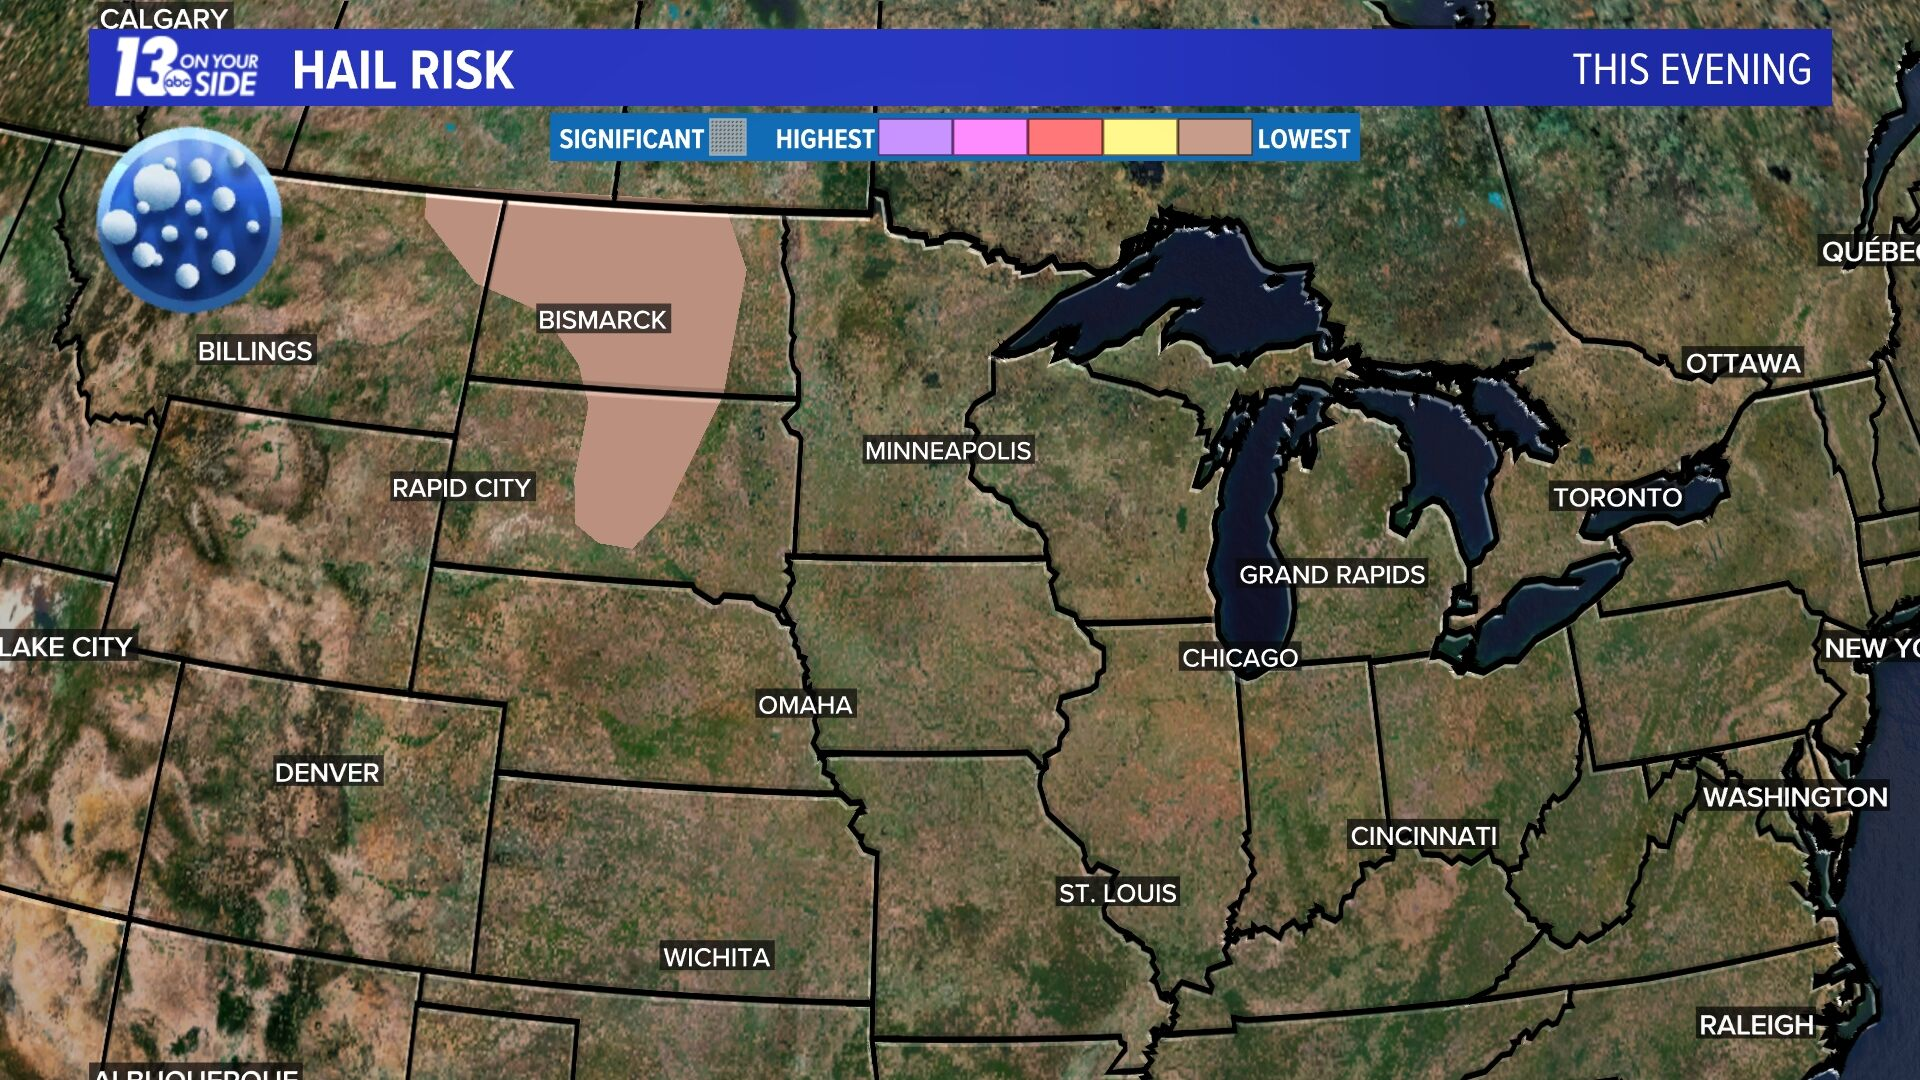 Today's Hail Risk